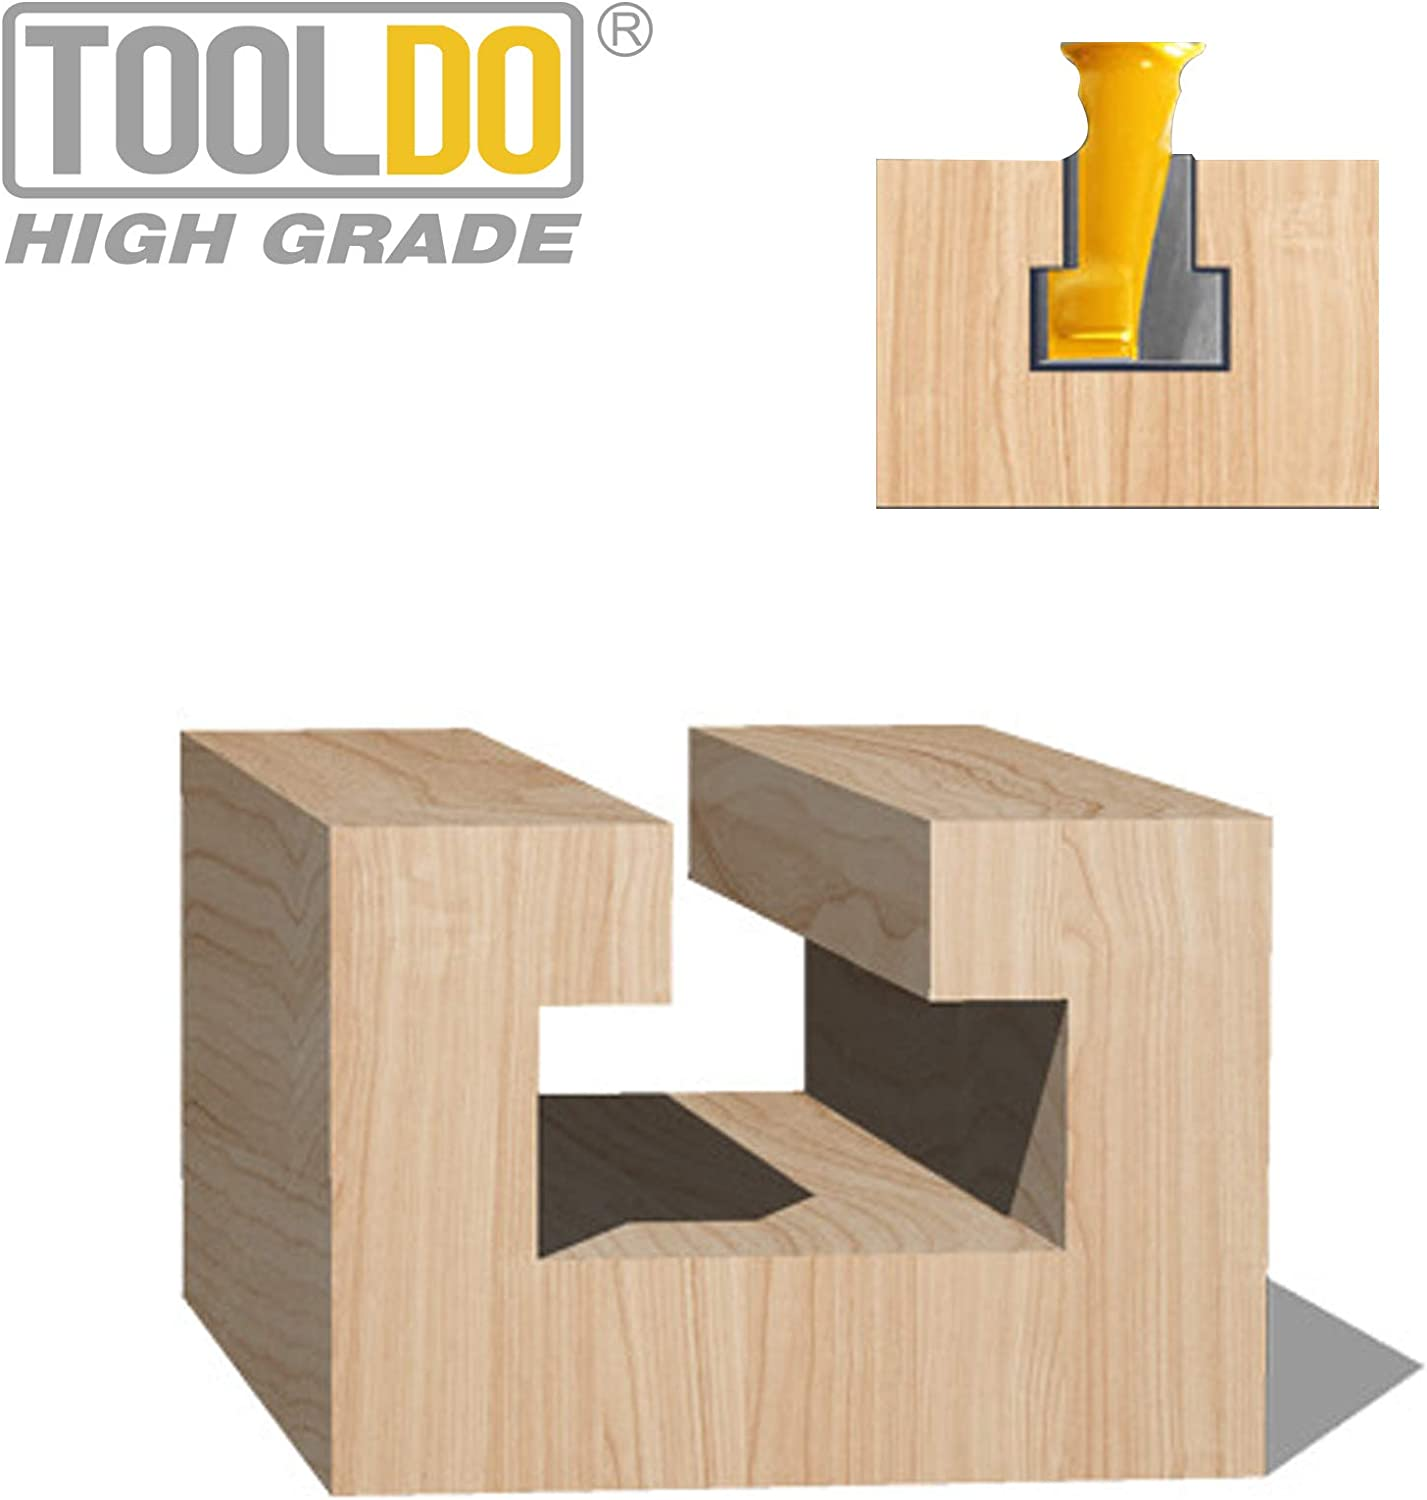 1//4 Inch Shank Keyhole Router Bit Set 3//8 /& 1//2 Inch Blade Diameter by Tooldo